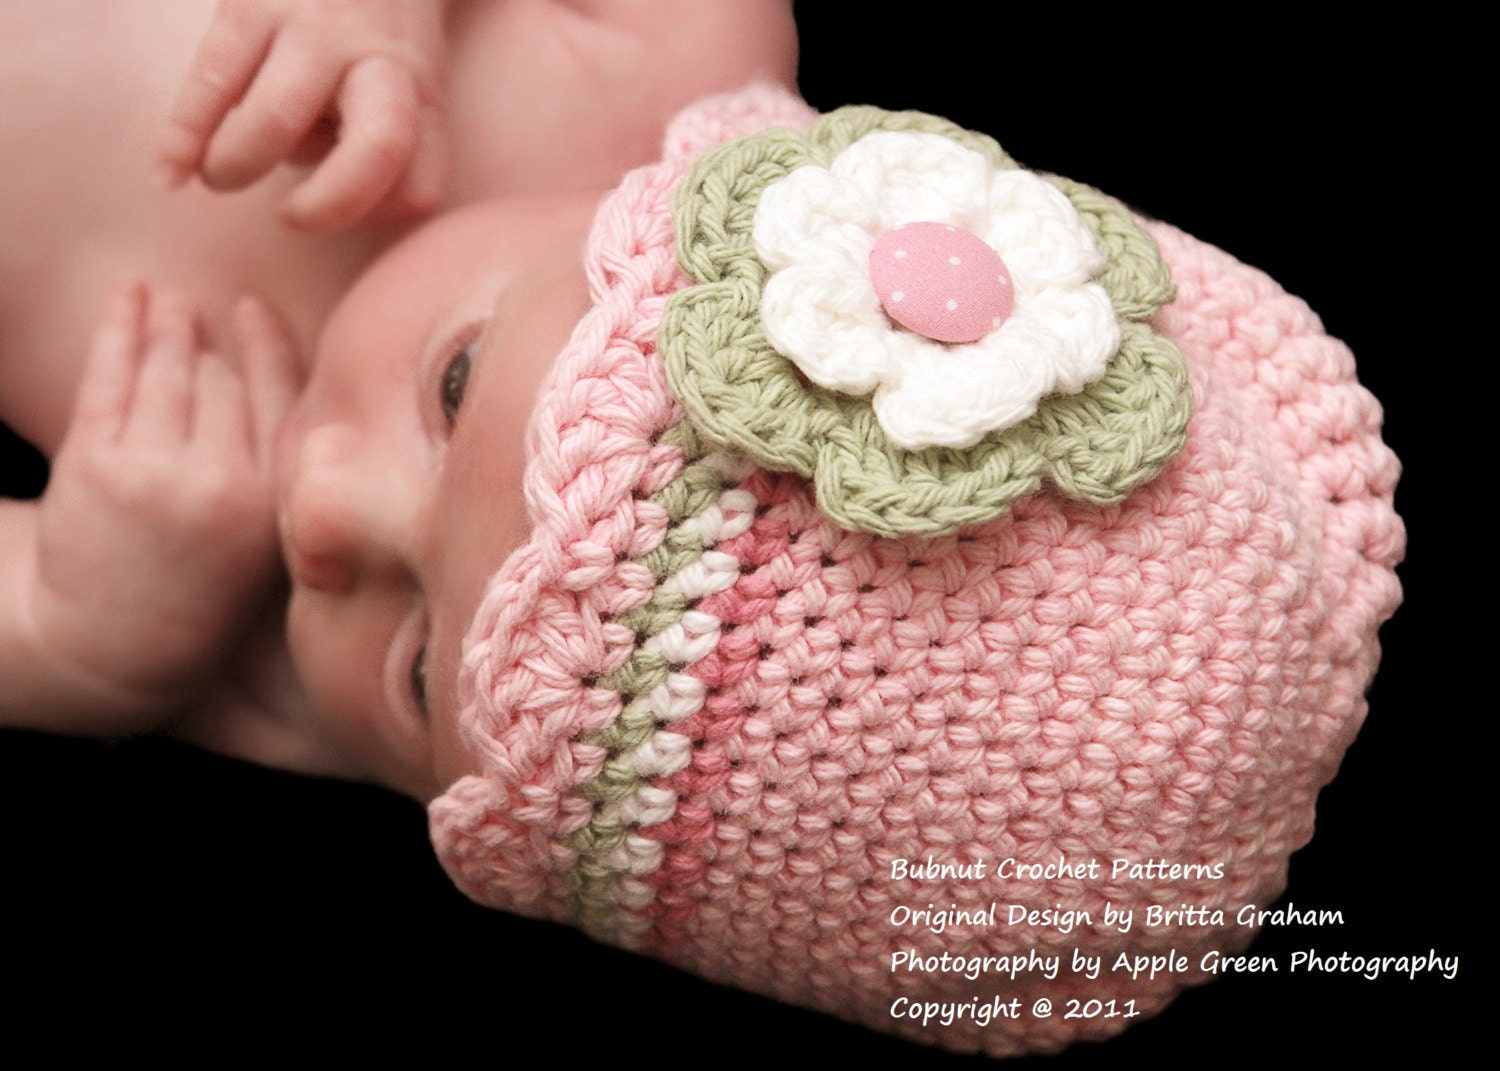 Crochet Stitches Baby Hats : Baby Hat Crochet Pattern with Shell Trim Crochet Hat Pattern by ...